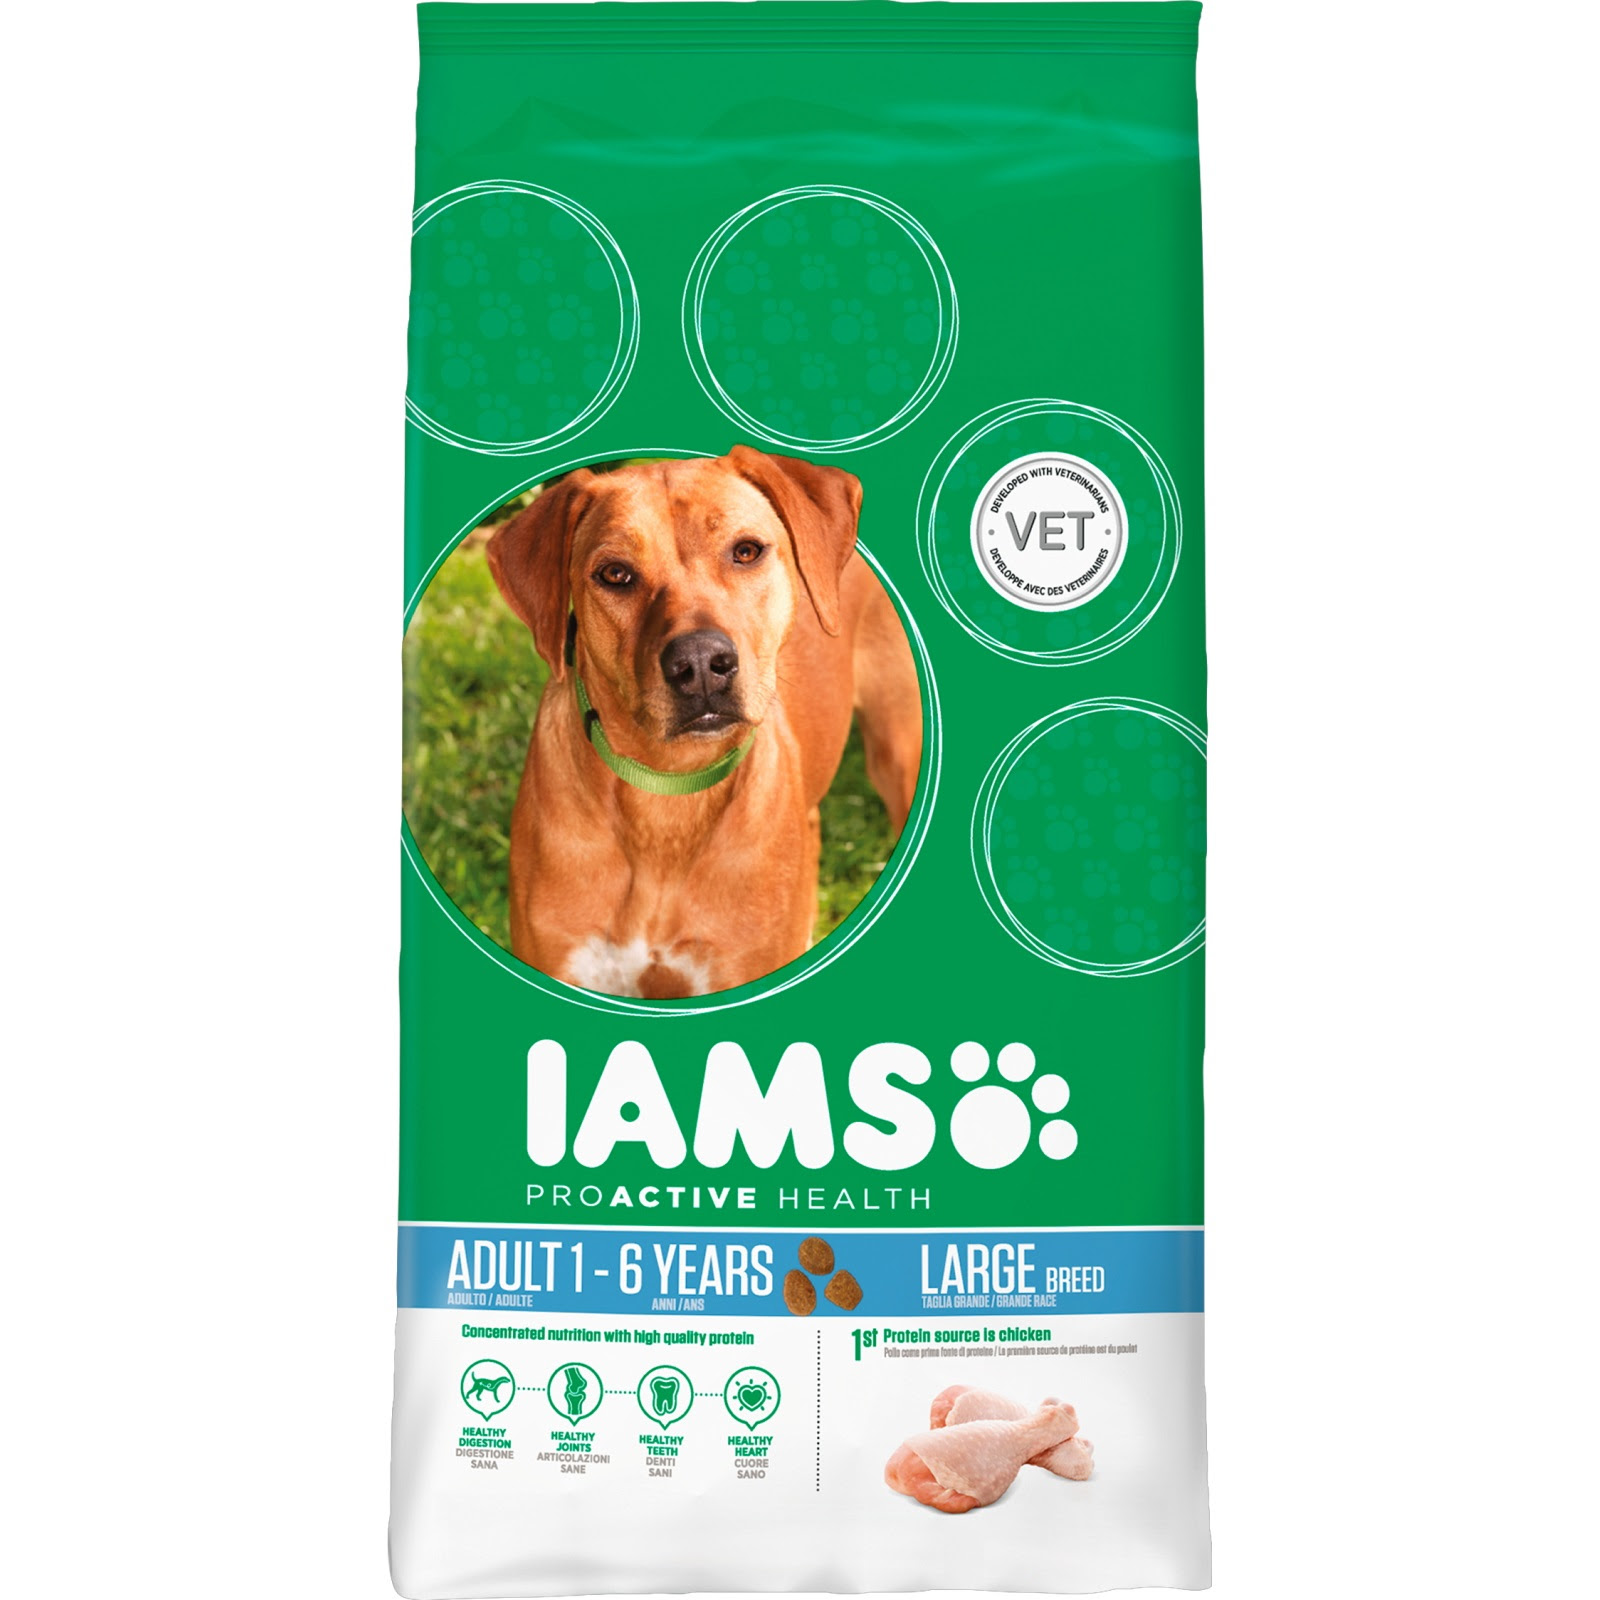 IAMS Chicken Large Breed Adult Dog Food - From £8.34